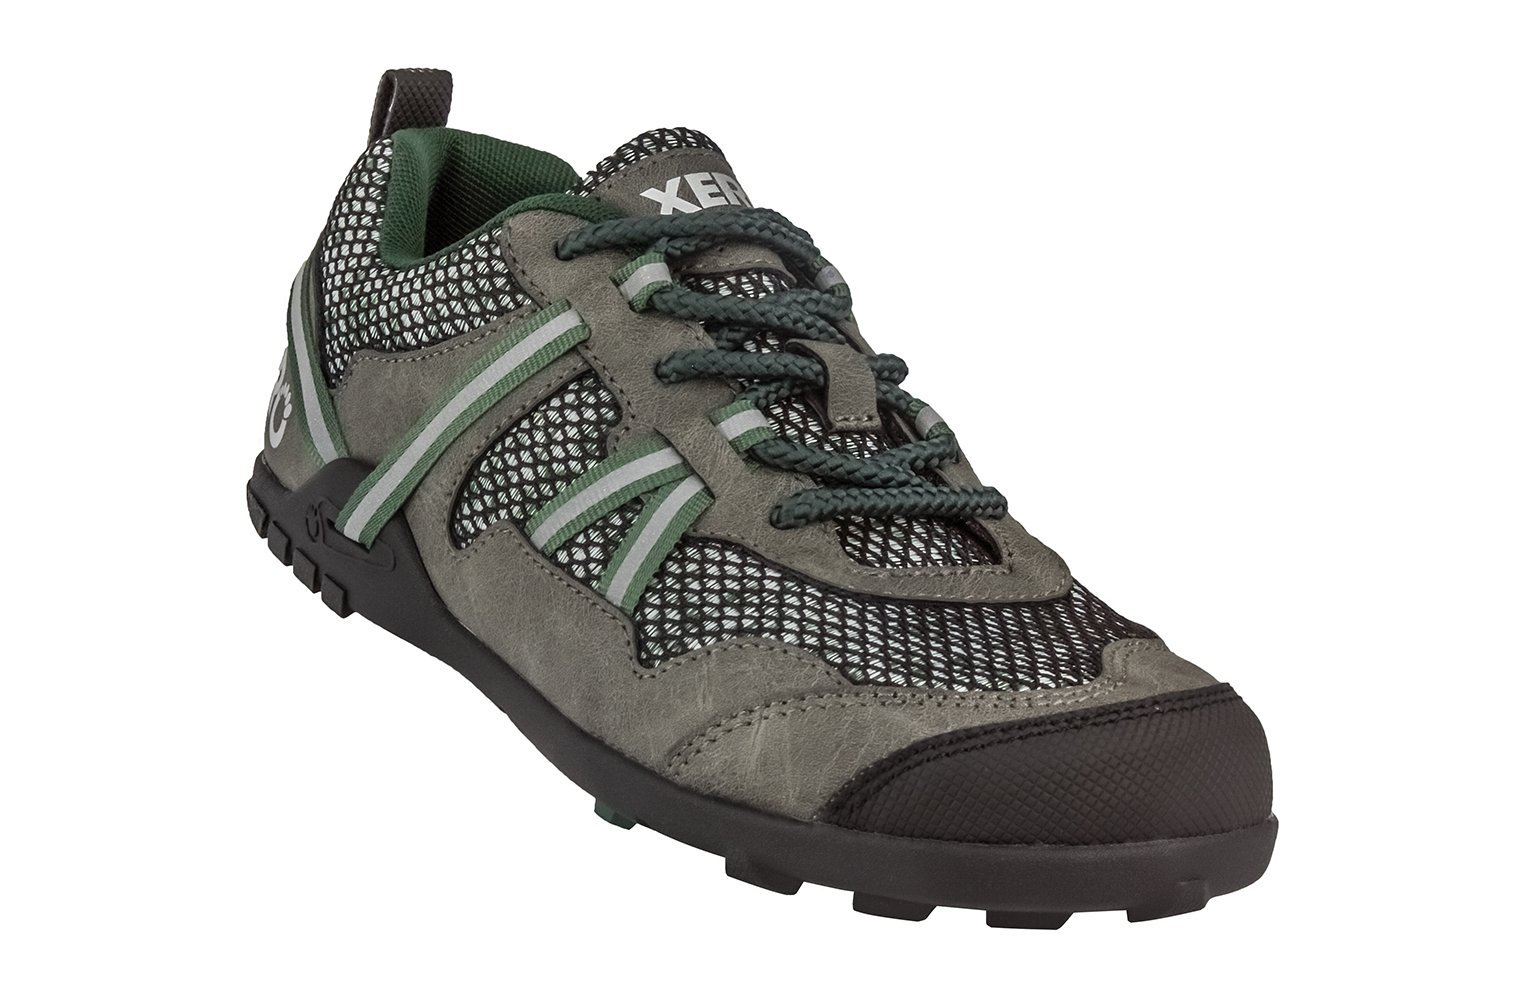 Xero Shoes TerraFlex Trail Running Hiking Shoe - Minimalist Zero-Drop Lightweight Barefoot-Inspired - Men, Forest Green, 11.5 D(M) US